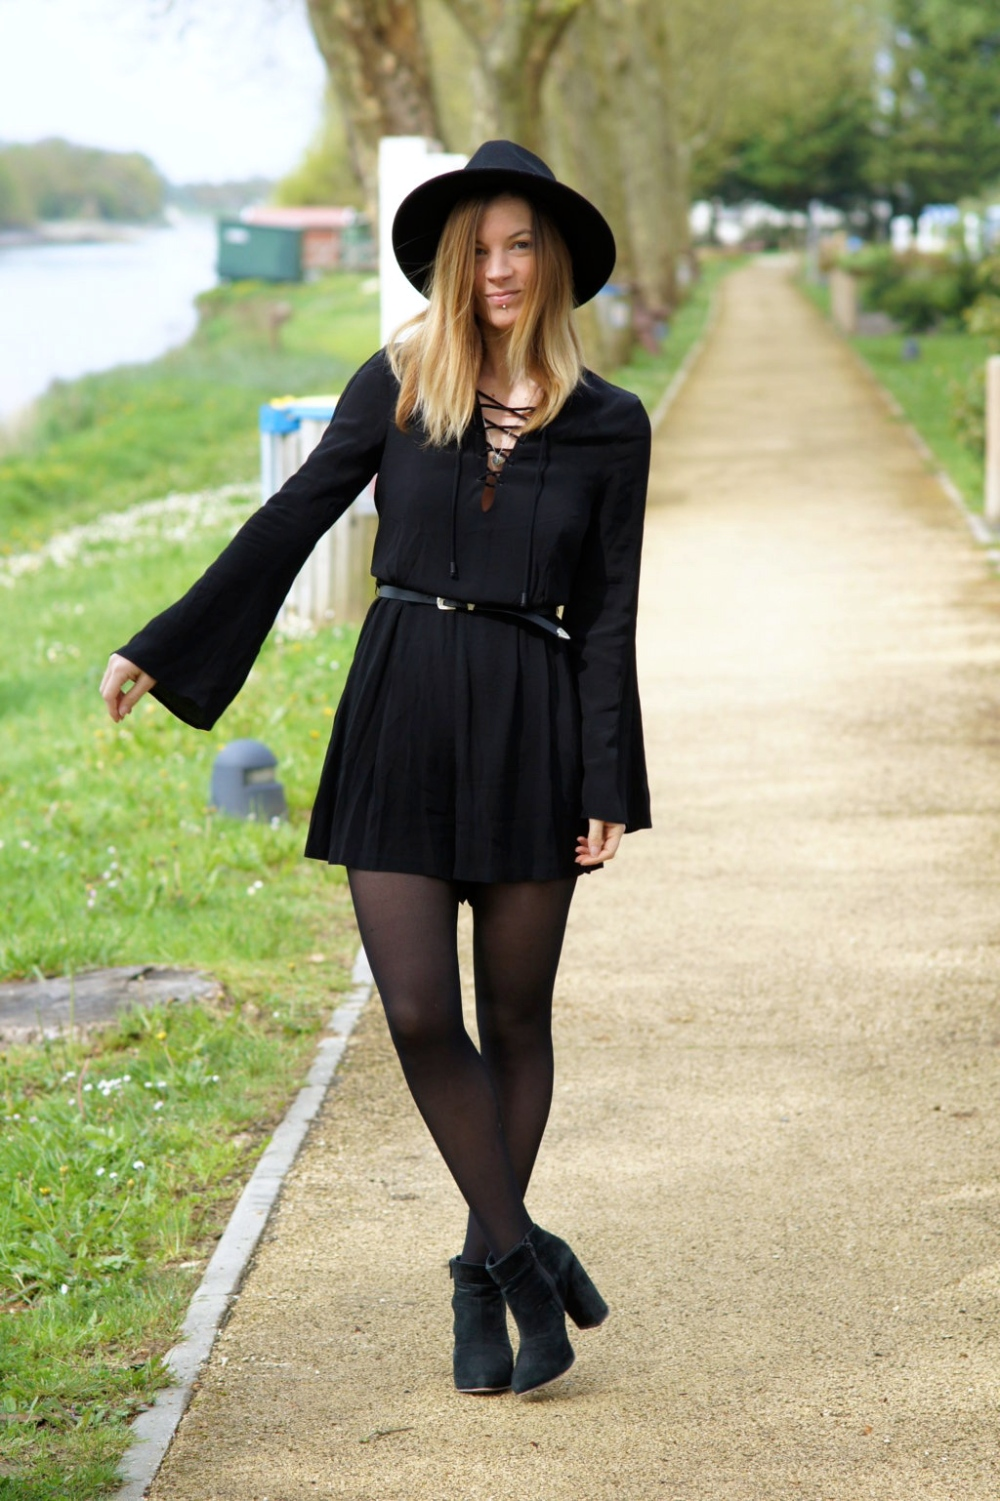 DSC02484 (FILEminimizer)